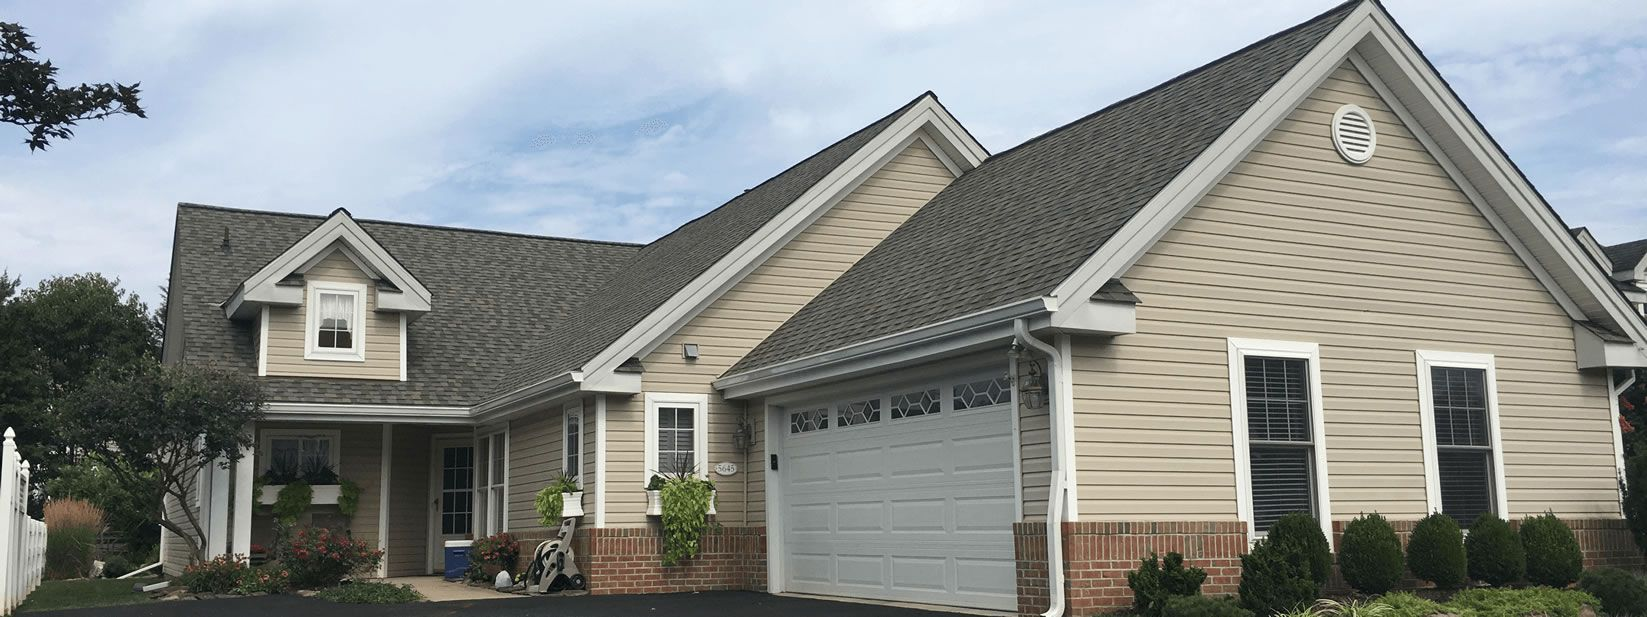 Best Roofing company in Grand Blanc Michigan